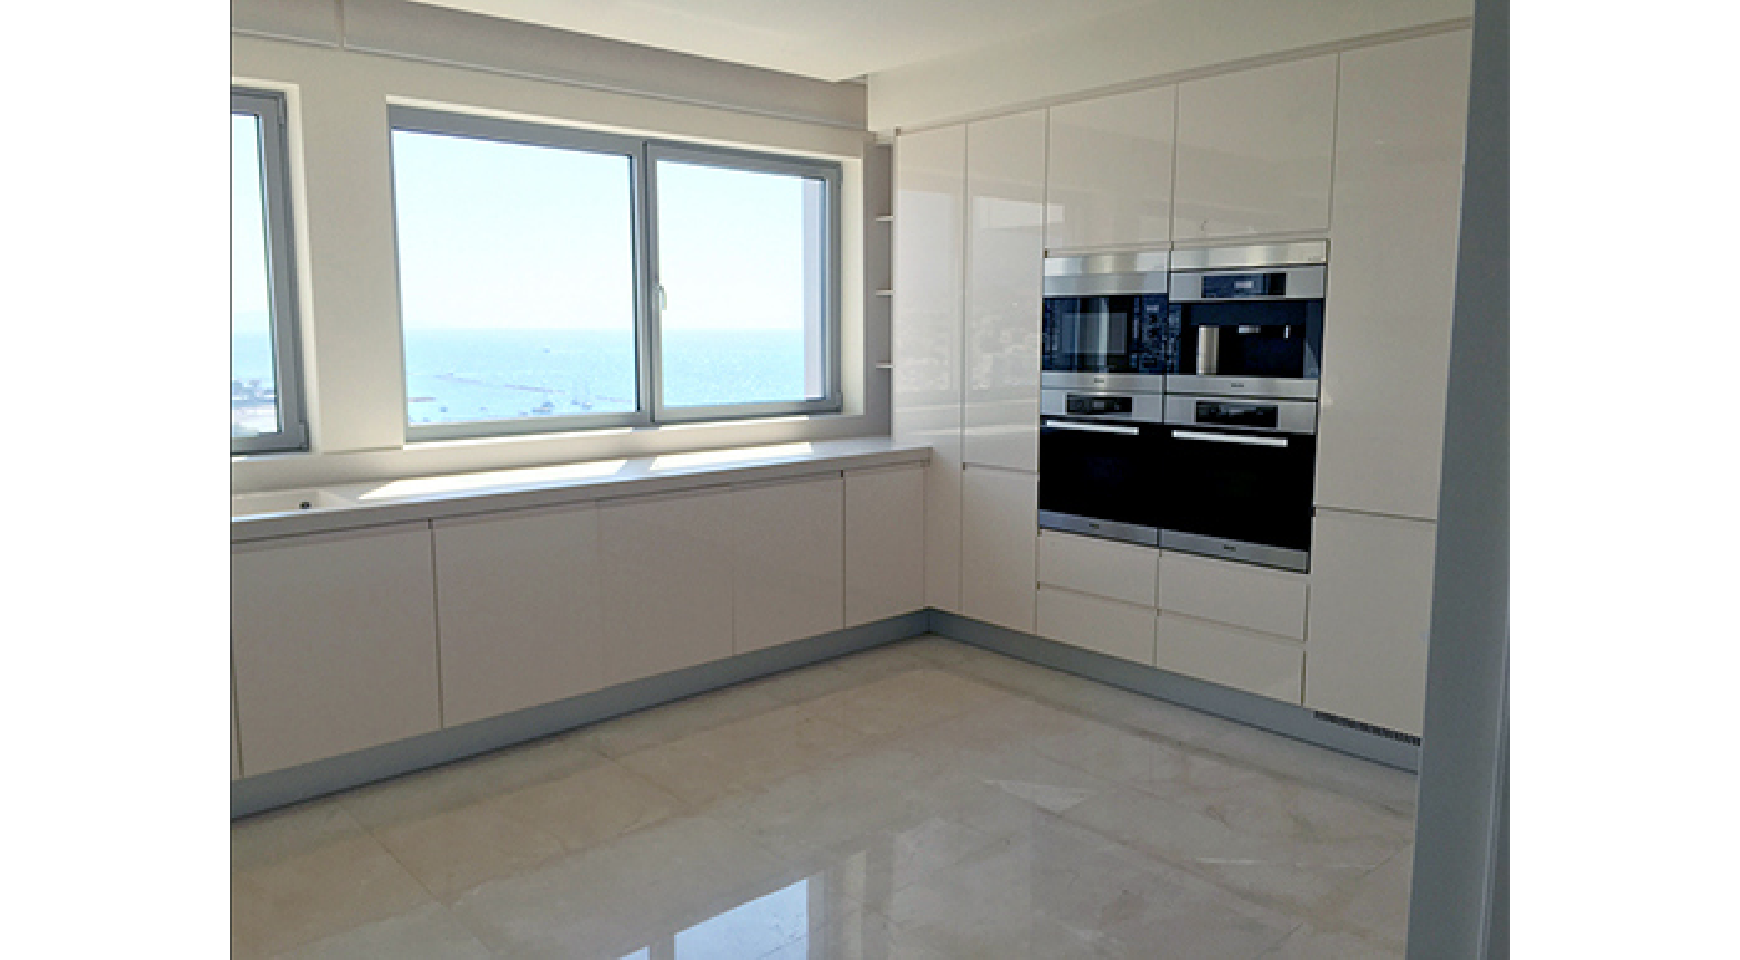 Spacious 3 Bedroom Apartment in an Exclusive Development near the Sea  - 4